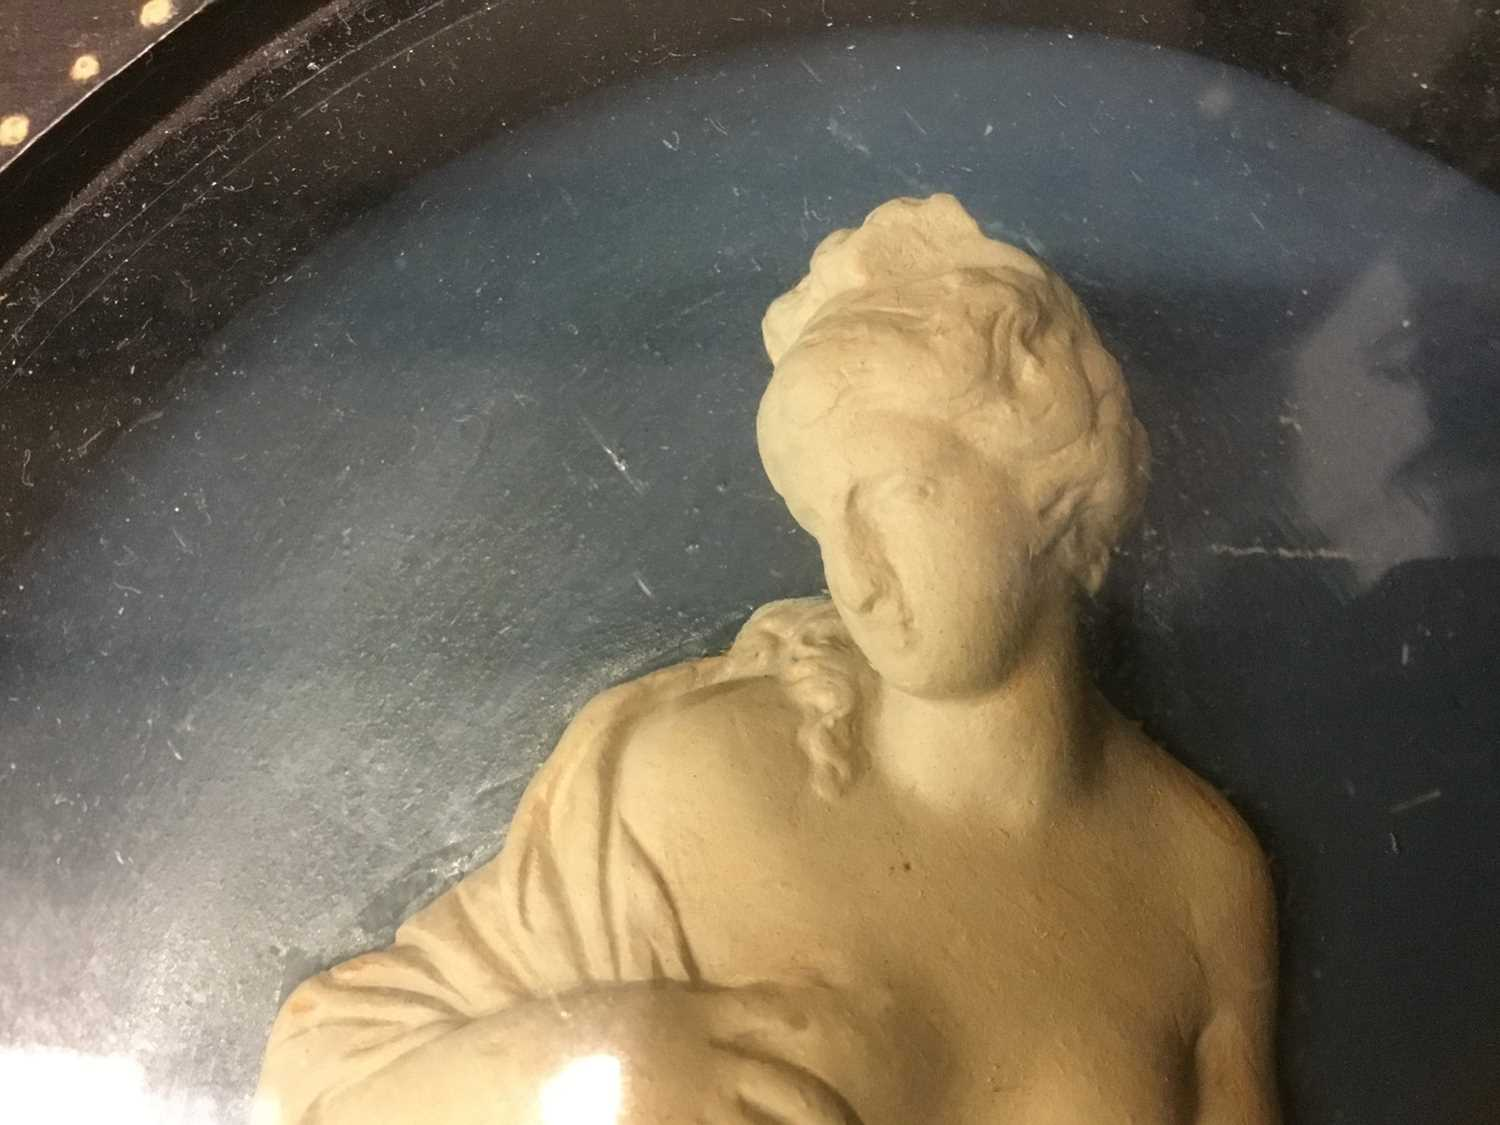 Pair of late 18th/early 19th century composition oval relief plaques depicting classical figures, in - Image 7 of 11